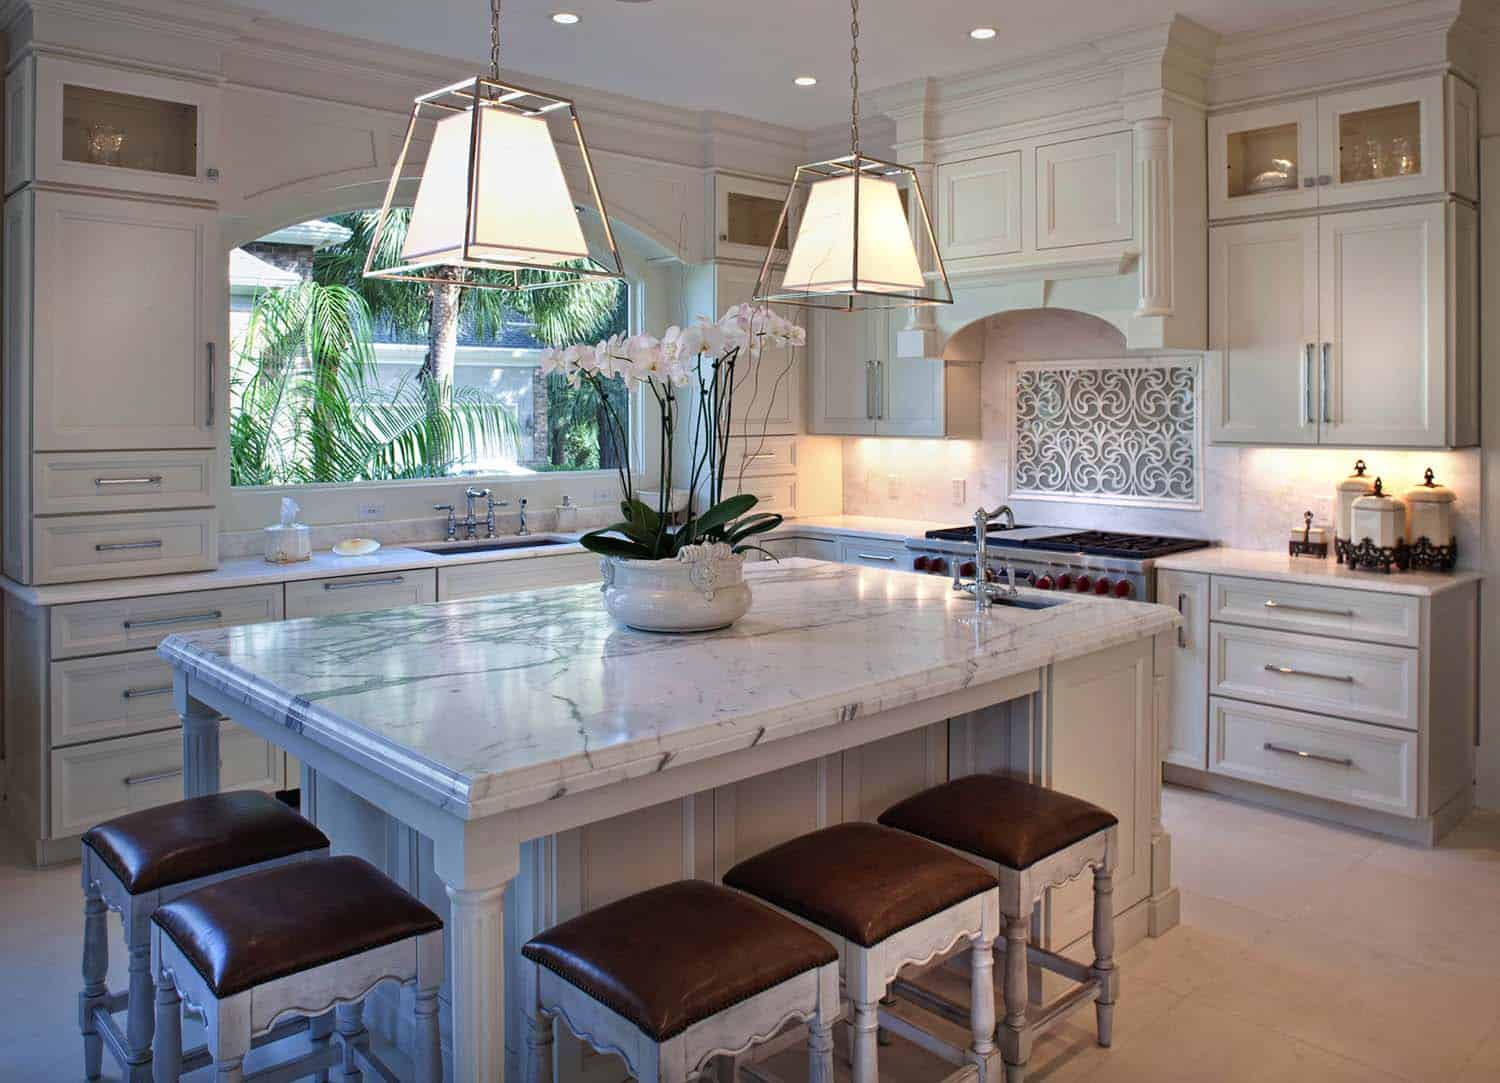 Breathtaking Carrara Marble Kitchens-13-1 Kindesign